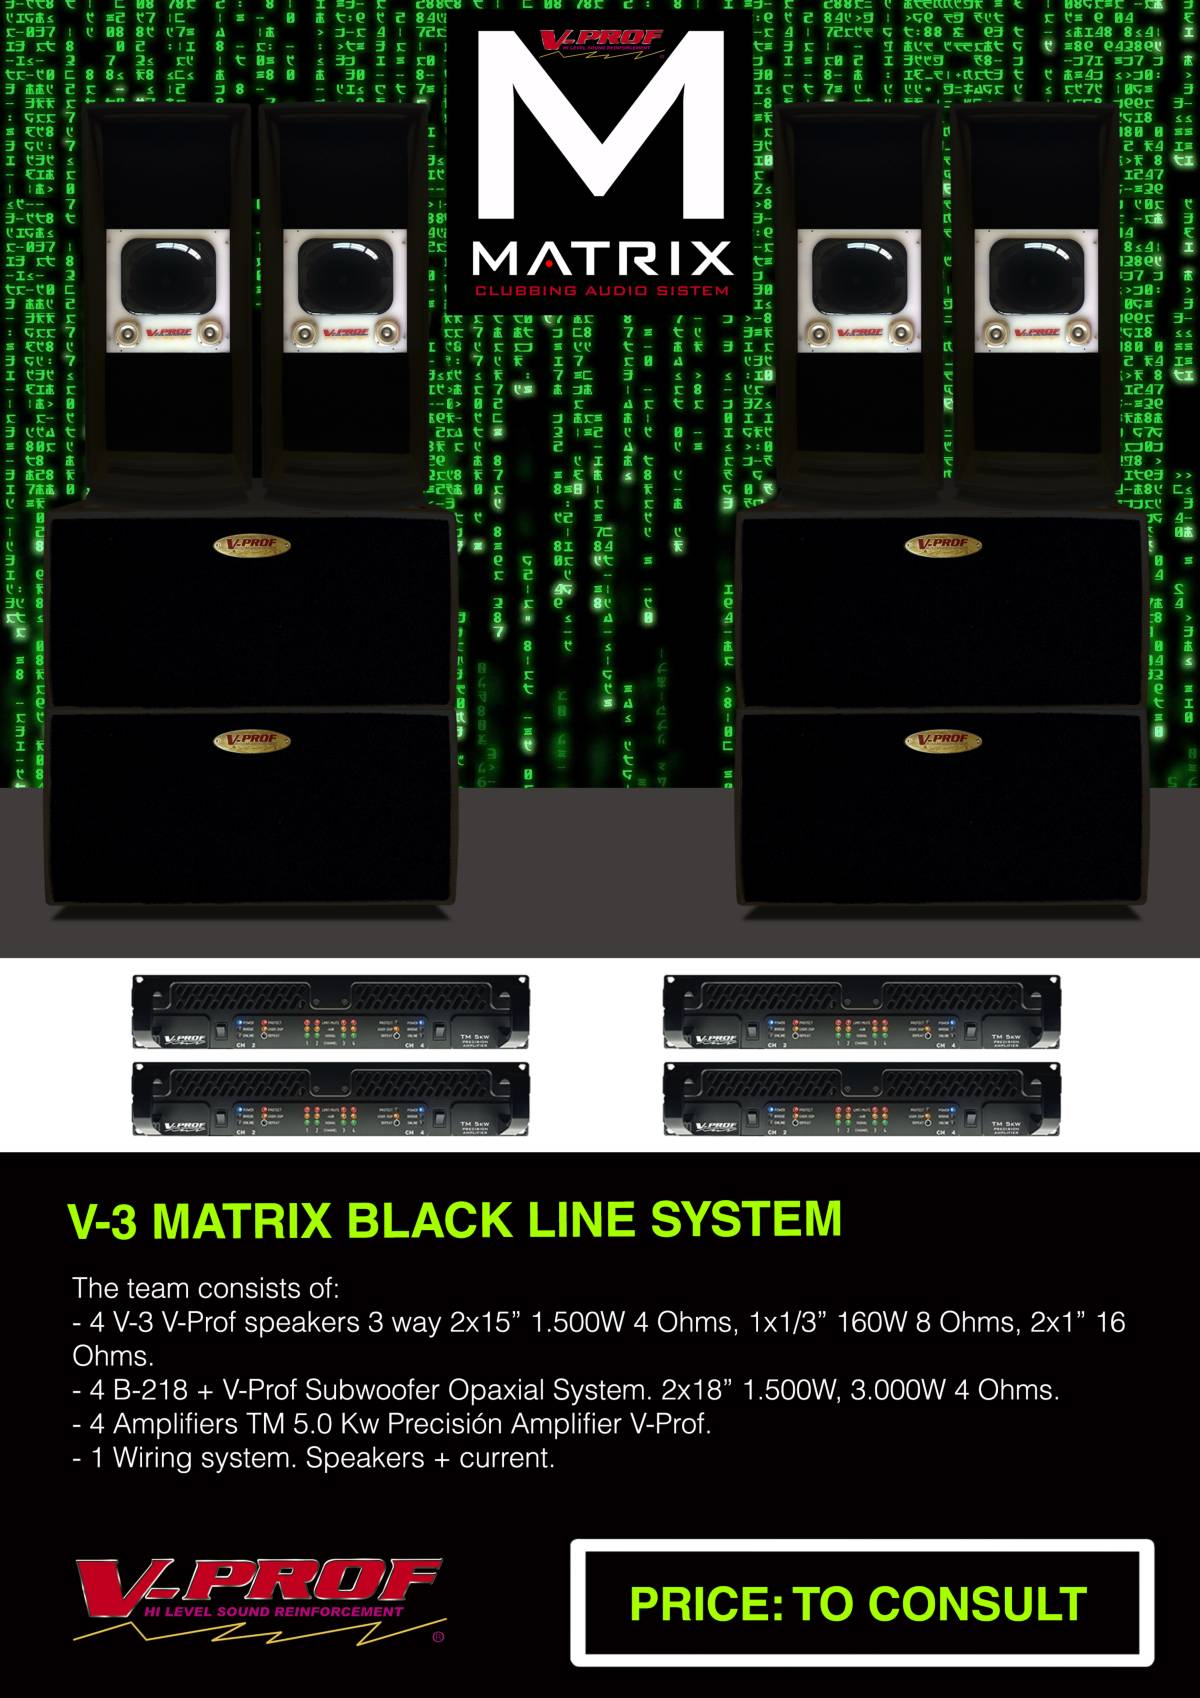 NEW PANEL EQUIPO GRANDE MATRIX FINAL SIN PRECIO ENGLISH